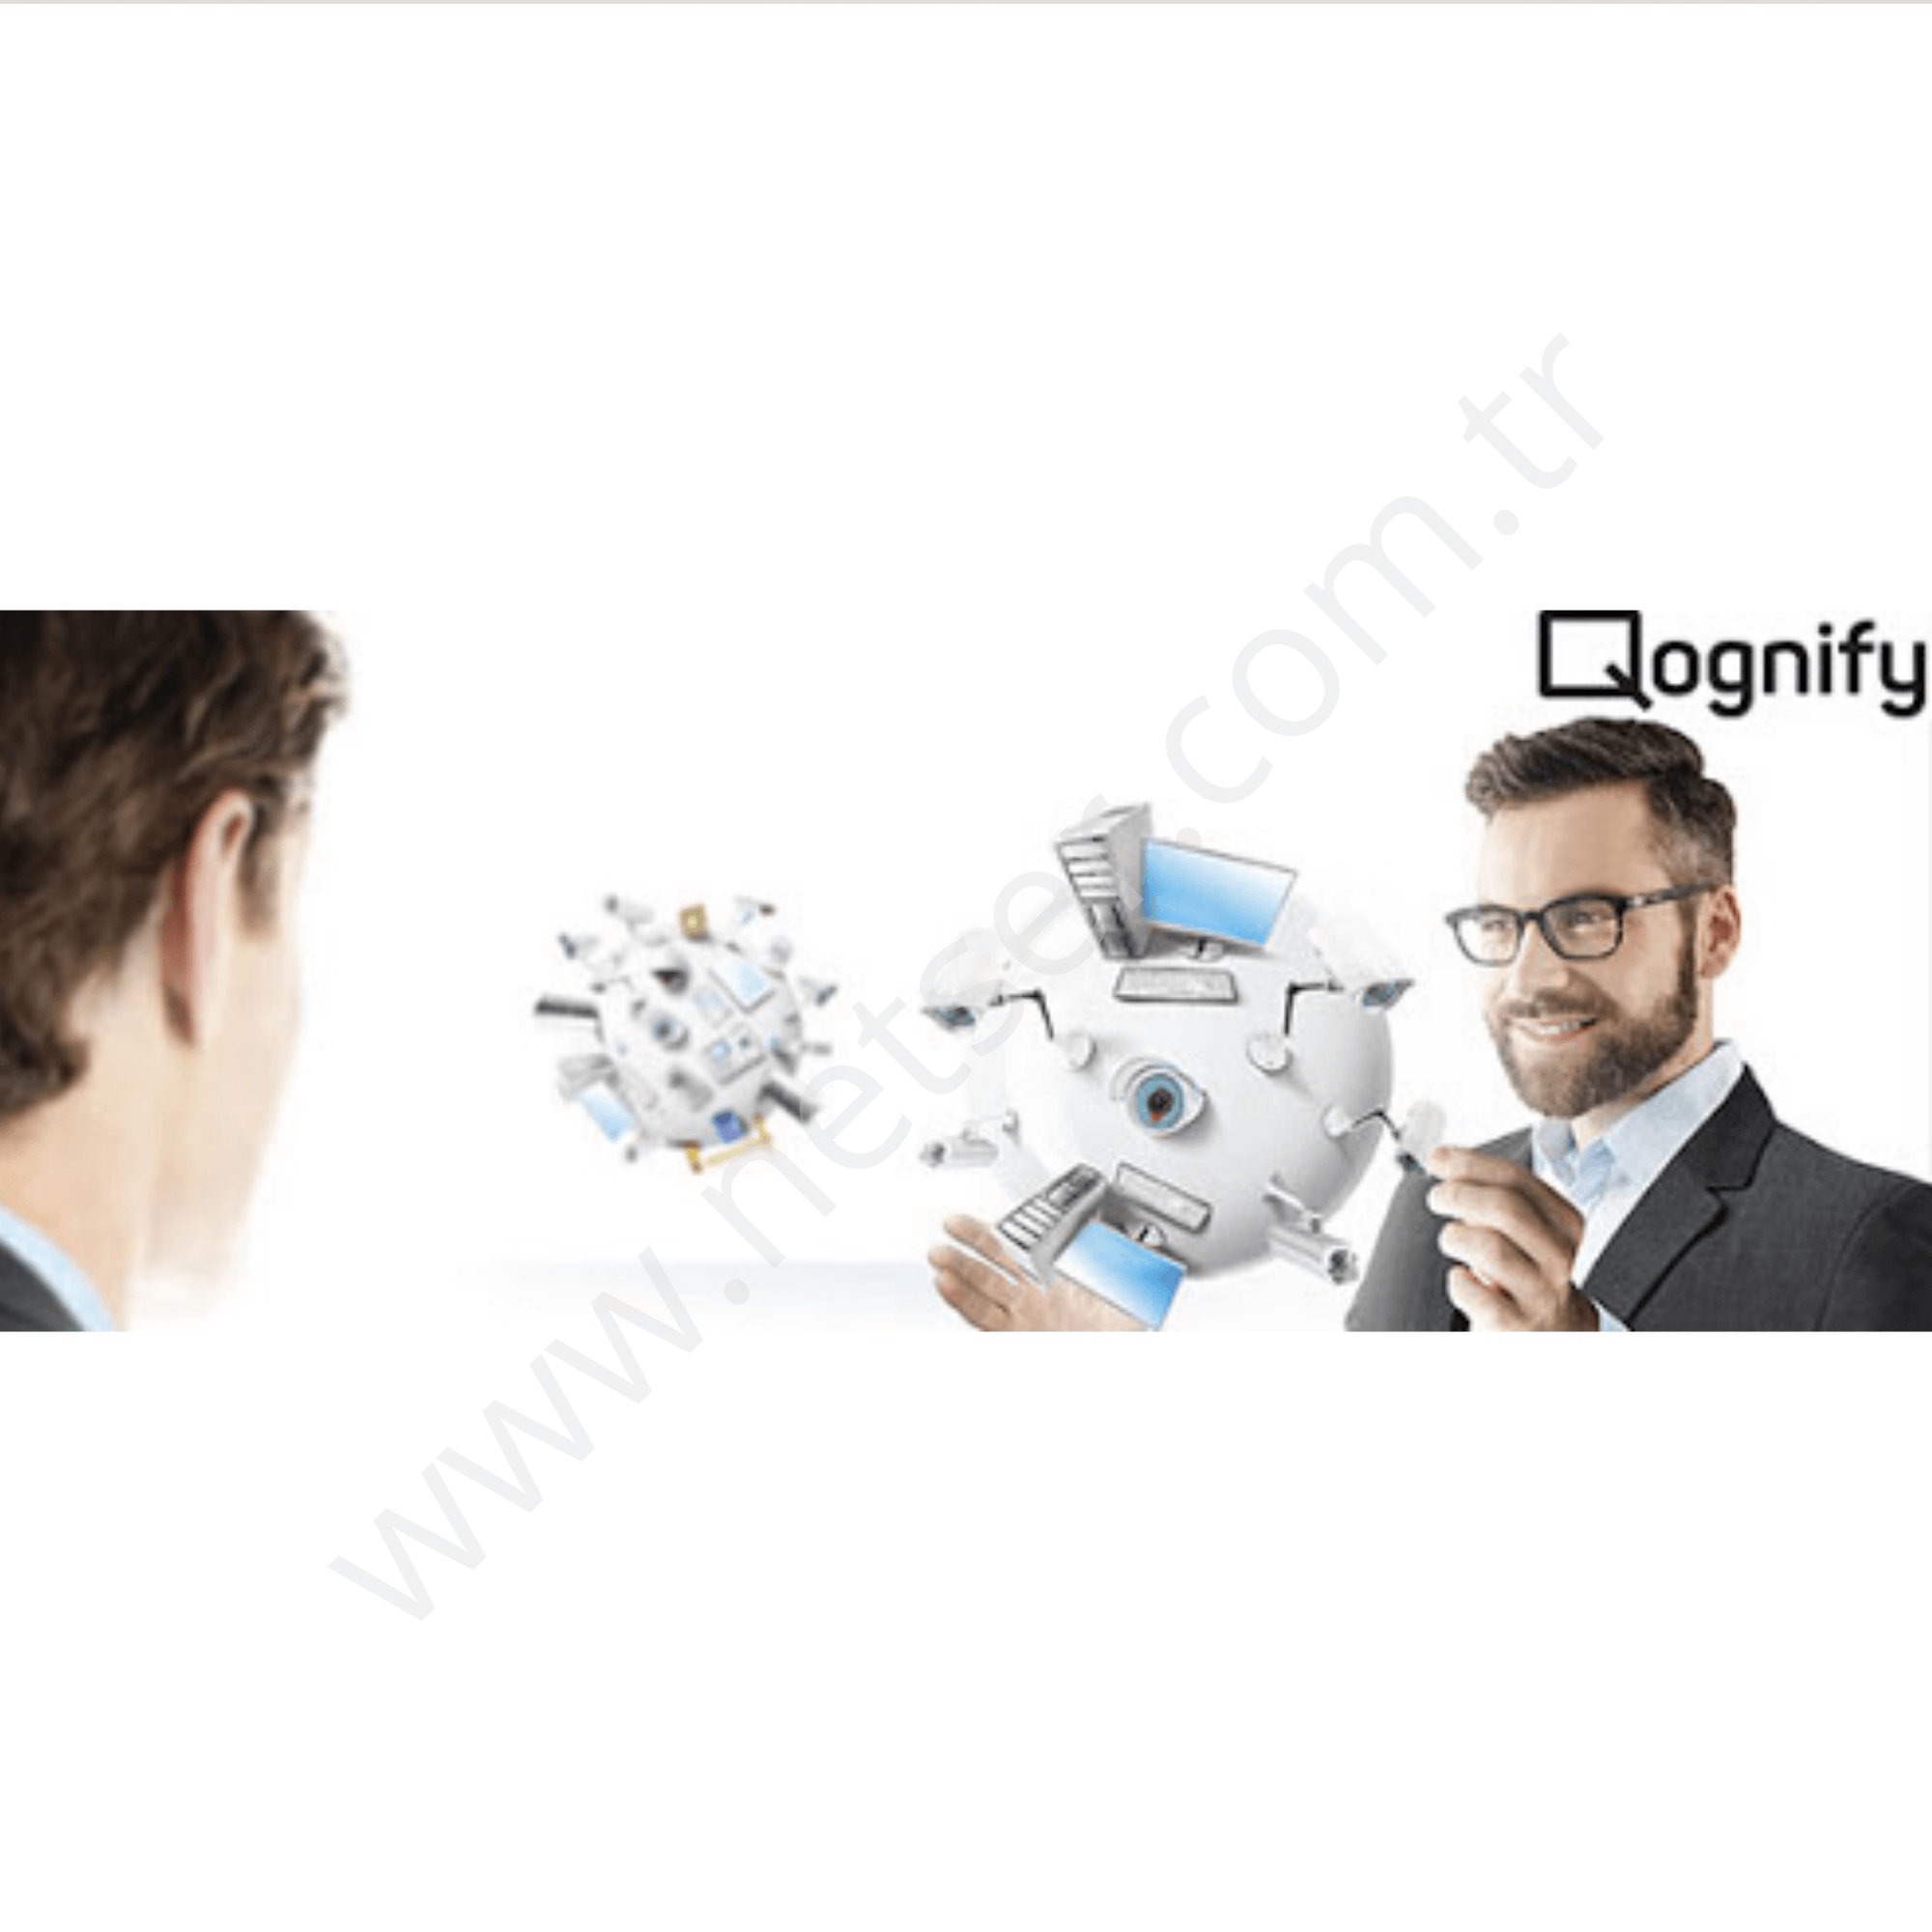 Qognift Video Management Software